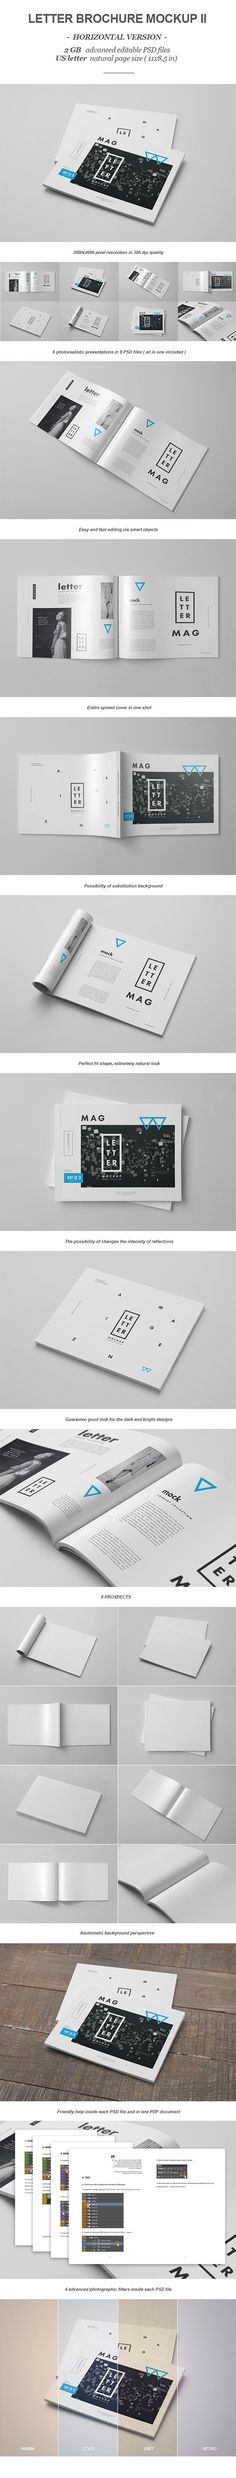 Buy Horizontal Letter Magazine / Brochure Mock-up 2 by on GraphicRiver. Letter Magazine / Brochure Mock-up 2 Photorealistic LETTER magazine/borchure/catalog mock-up. So much in 9 PSD files. Identity Design, Design Brochure, Booklet Design, Brochure Layout, Web Design, Design Typo, Layout Design, Print Design, Editorial Design